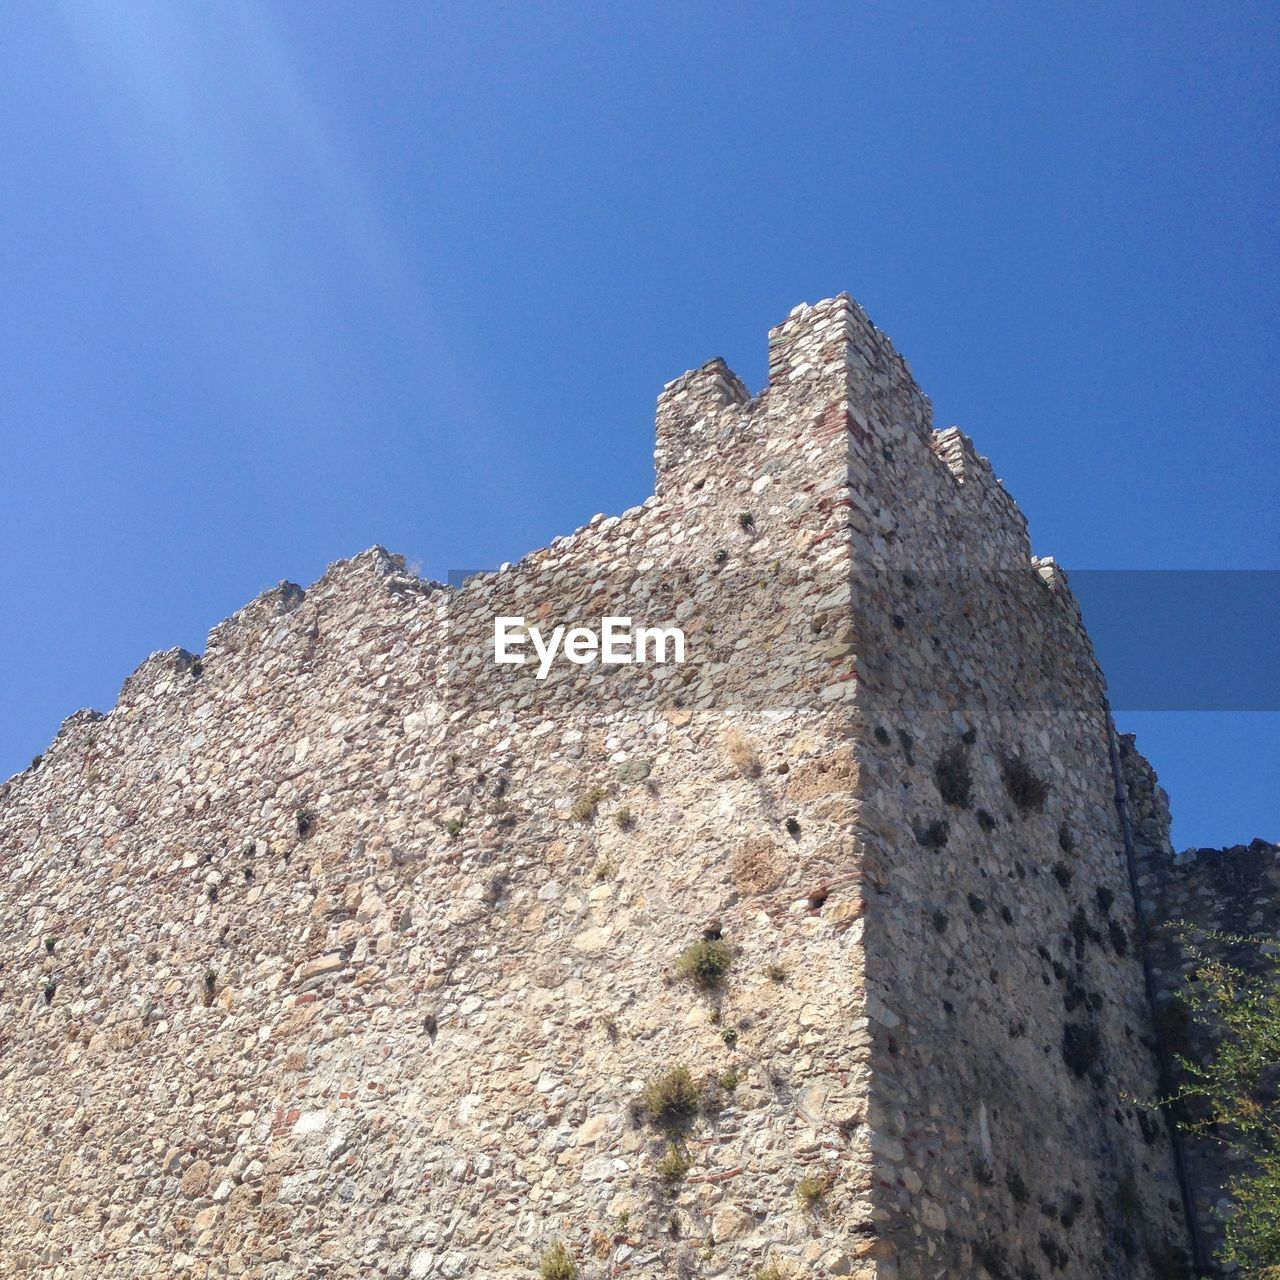 low angle view, clear sky, blue, history, day, no people, ancient, architecture, outdoors, sunlight, castle, old ruin, ancient civilization, built structure, mountain, nature, building exterior, sky